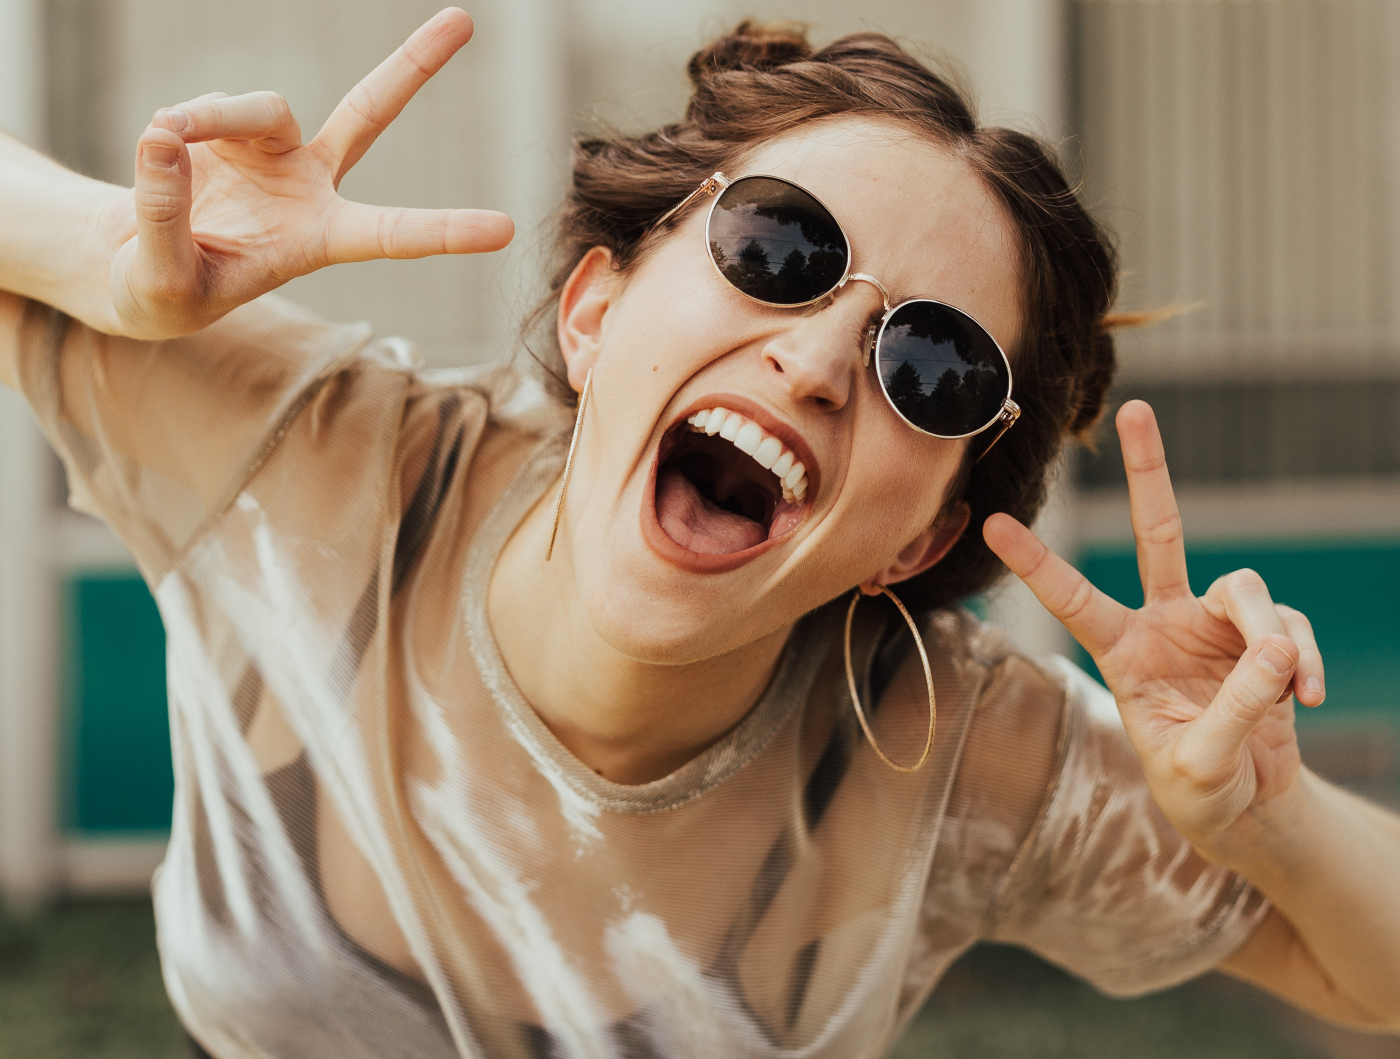 girl smiling and making peace signs